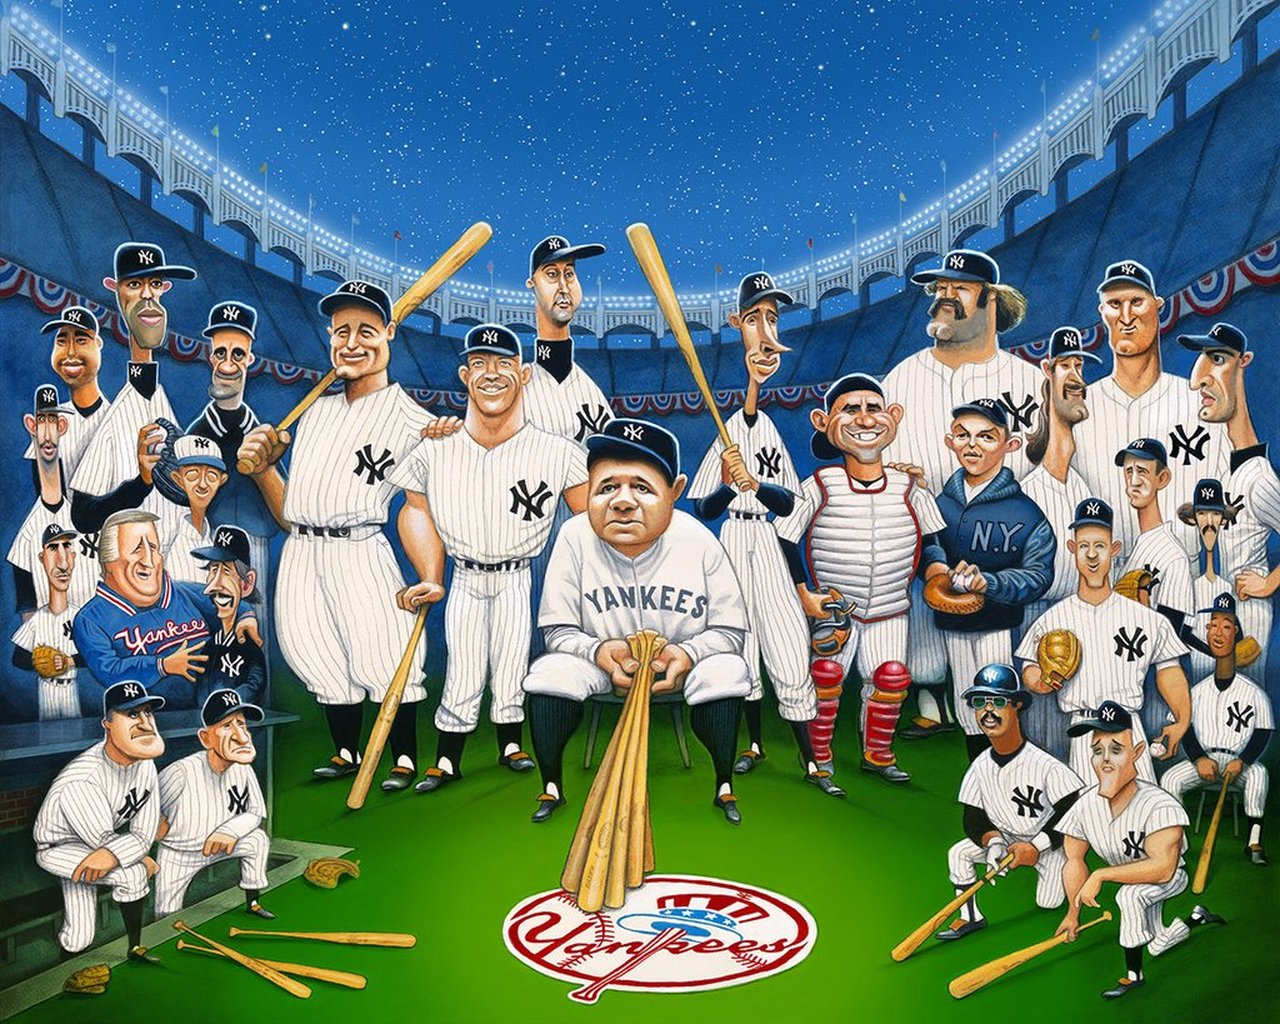 The Legends of the Yankees 1000 Piece Jigsaw Puzzle